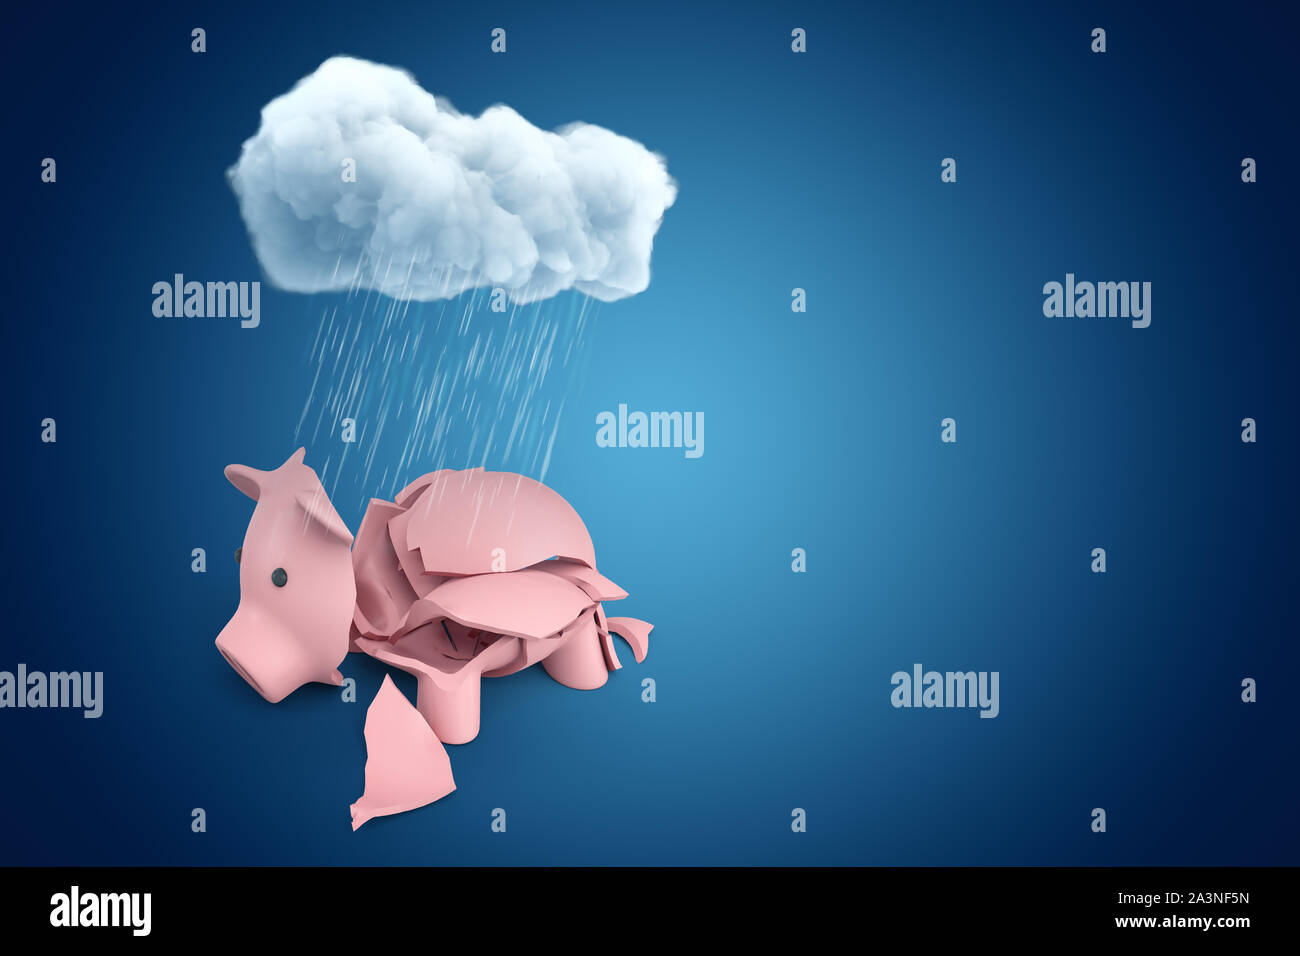 3d rendering of broken pink piggy bank under rainy white cloud on blue background Stock Photo